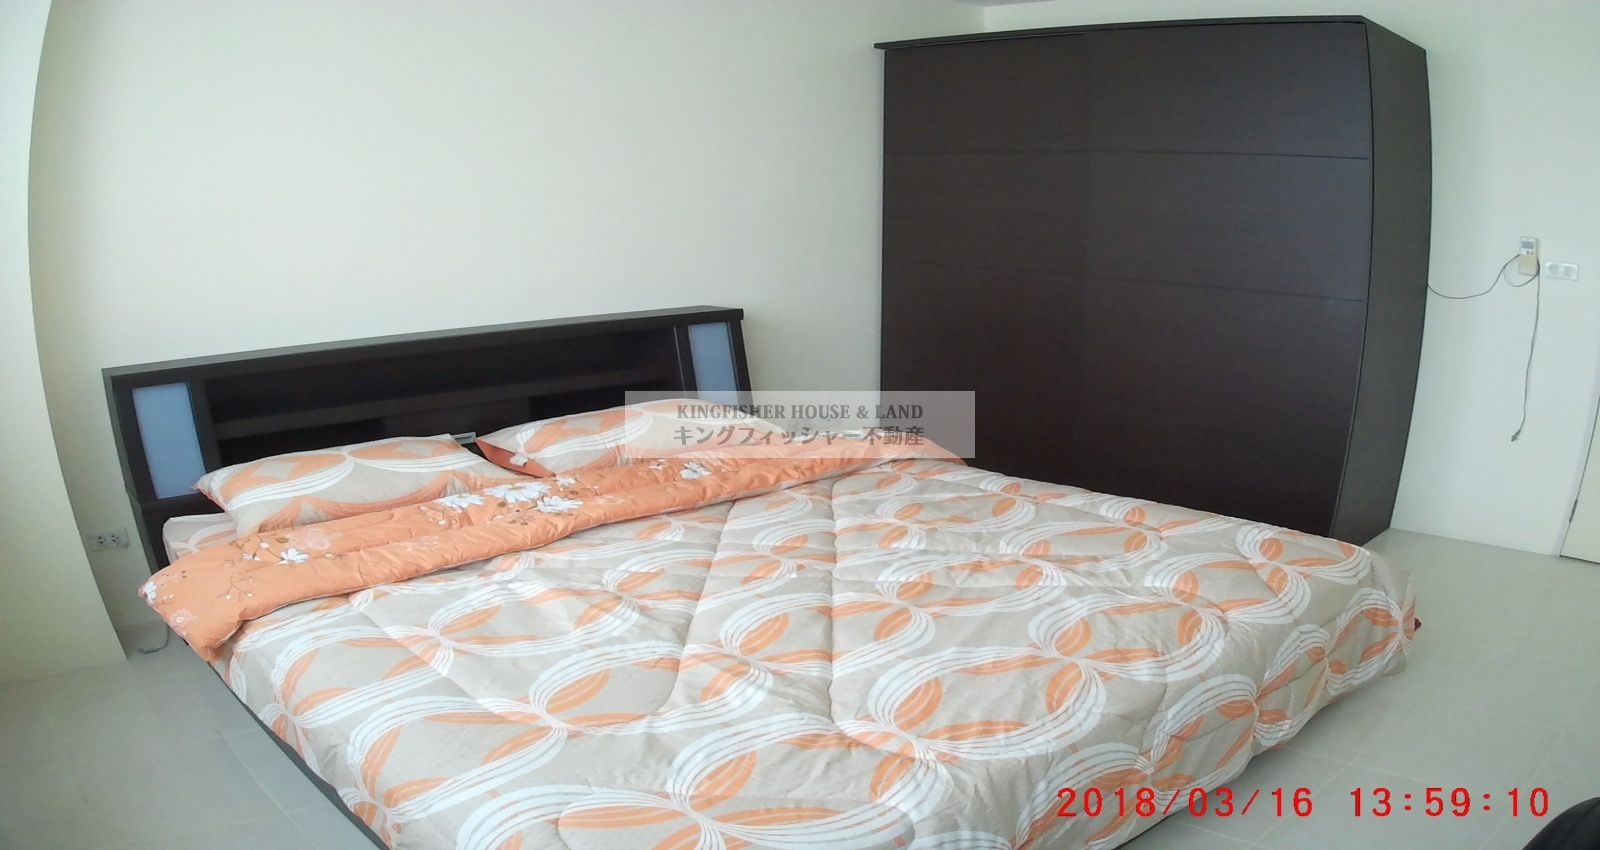 1 Bedrooms, Condominium, For Rent, 1 Bathrooms, Listing ID 1239, Sriracha, Thailand, 20110,